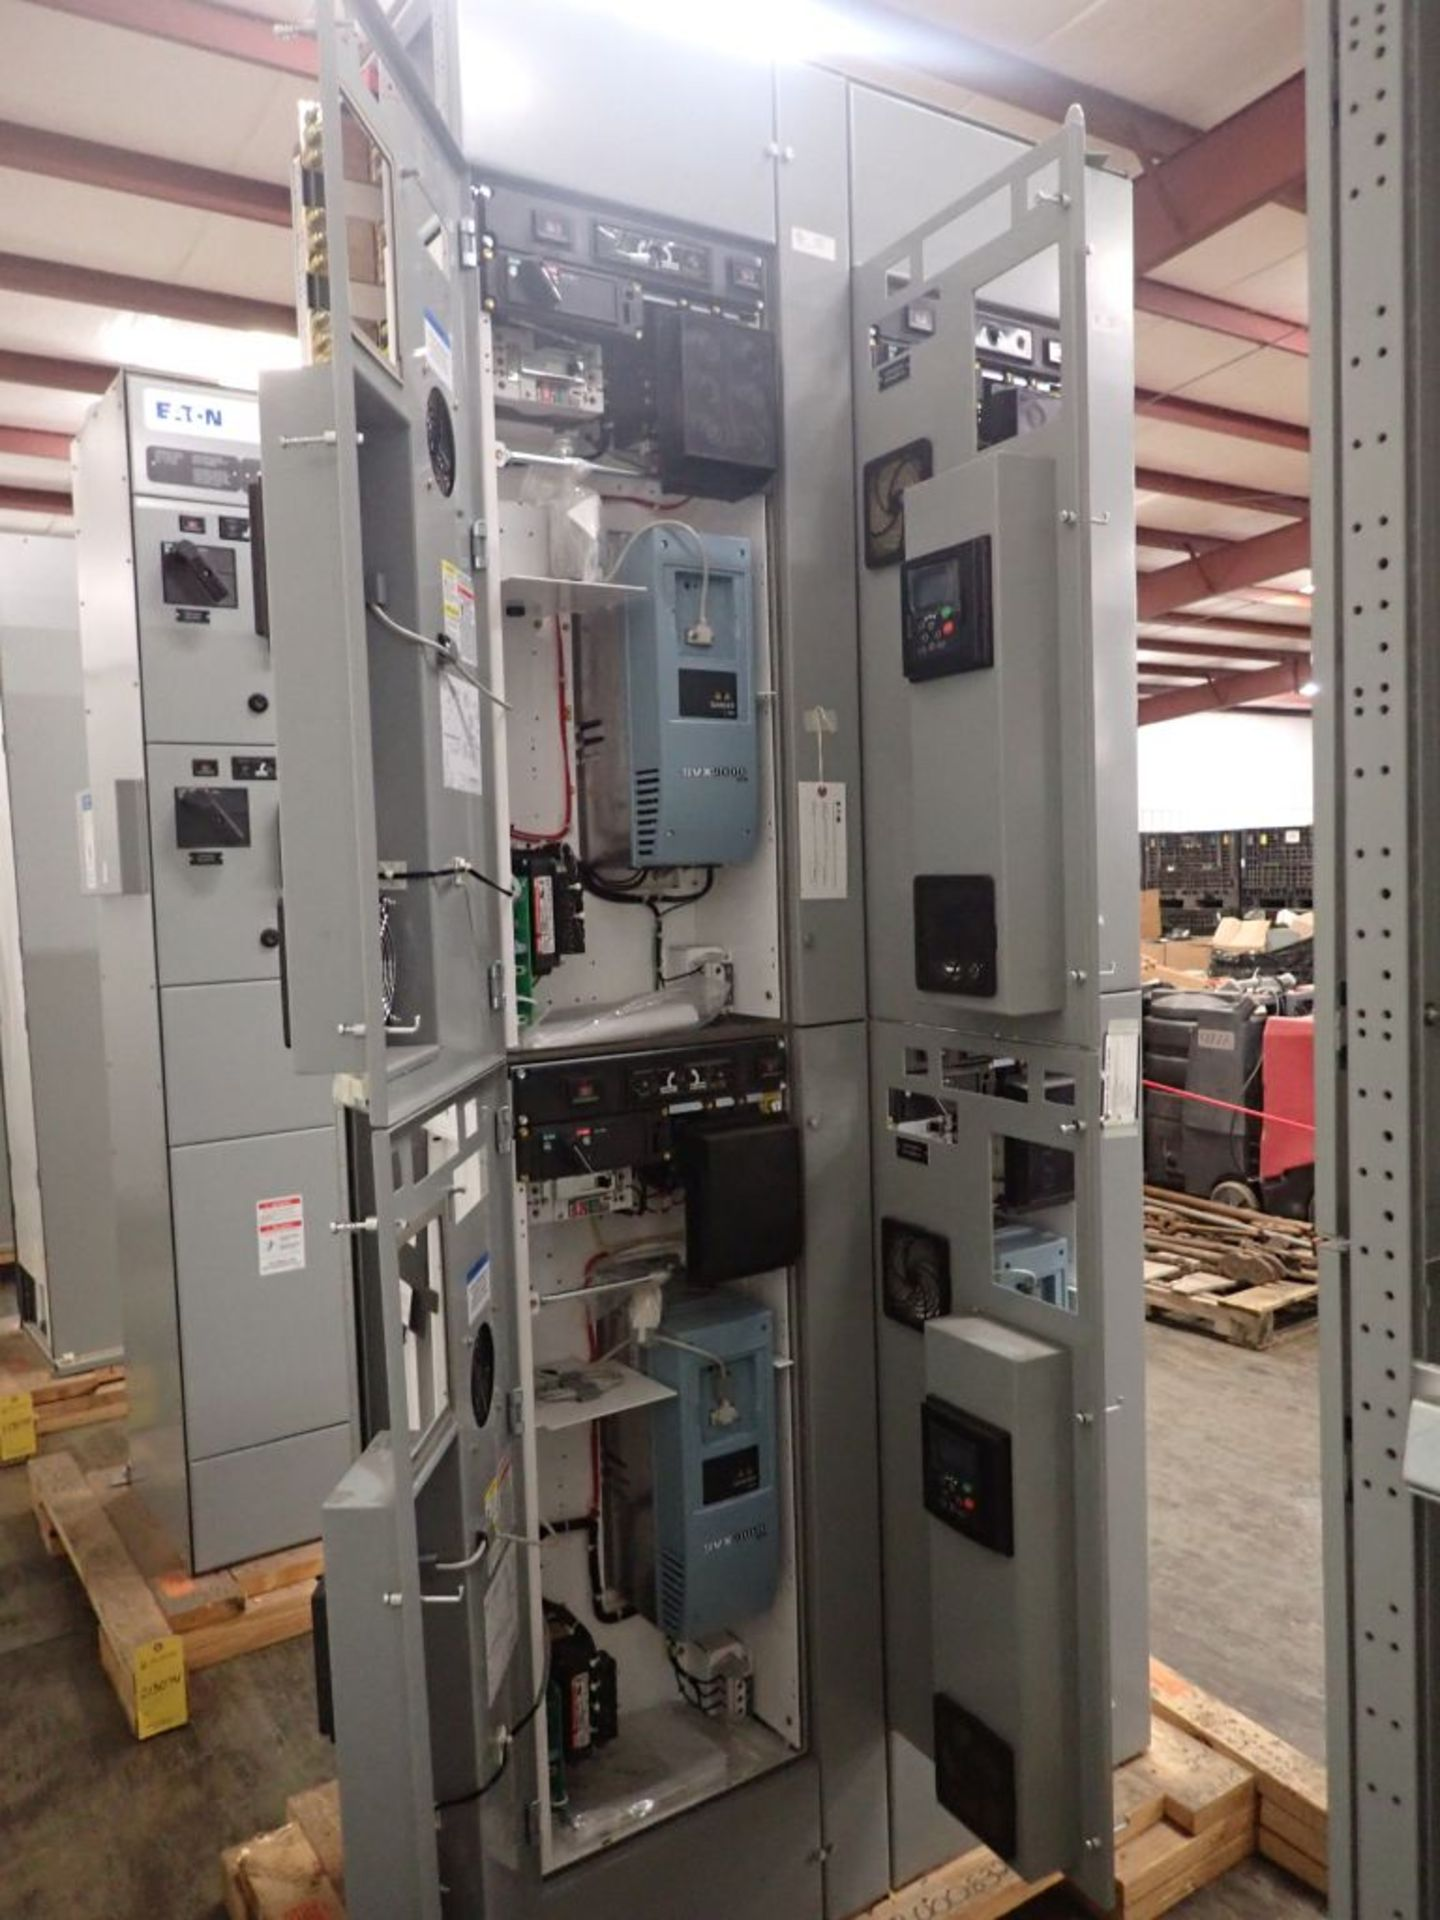 Eaton Freedom 2100 Series Motor Control Center | (2) F206-7A-10HP; (3) F206-15A-10HP; (1) FDRB-100A; - Image 8 of 87